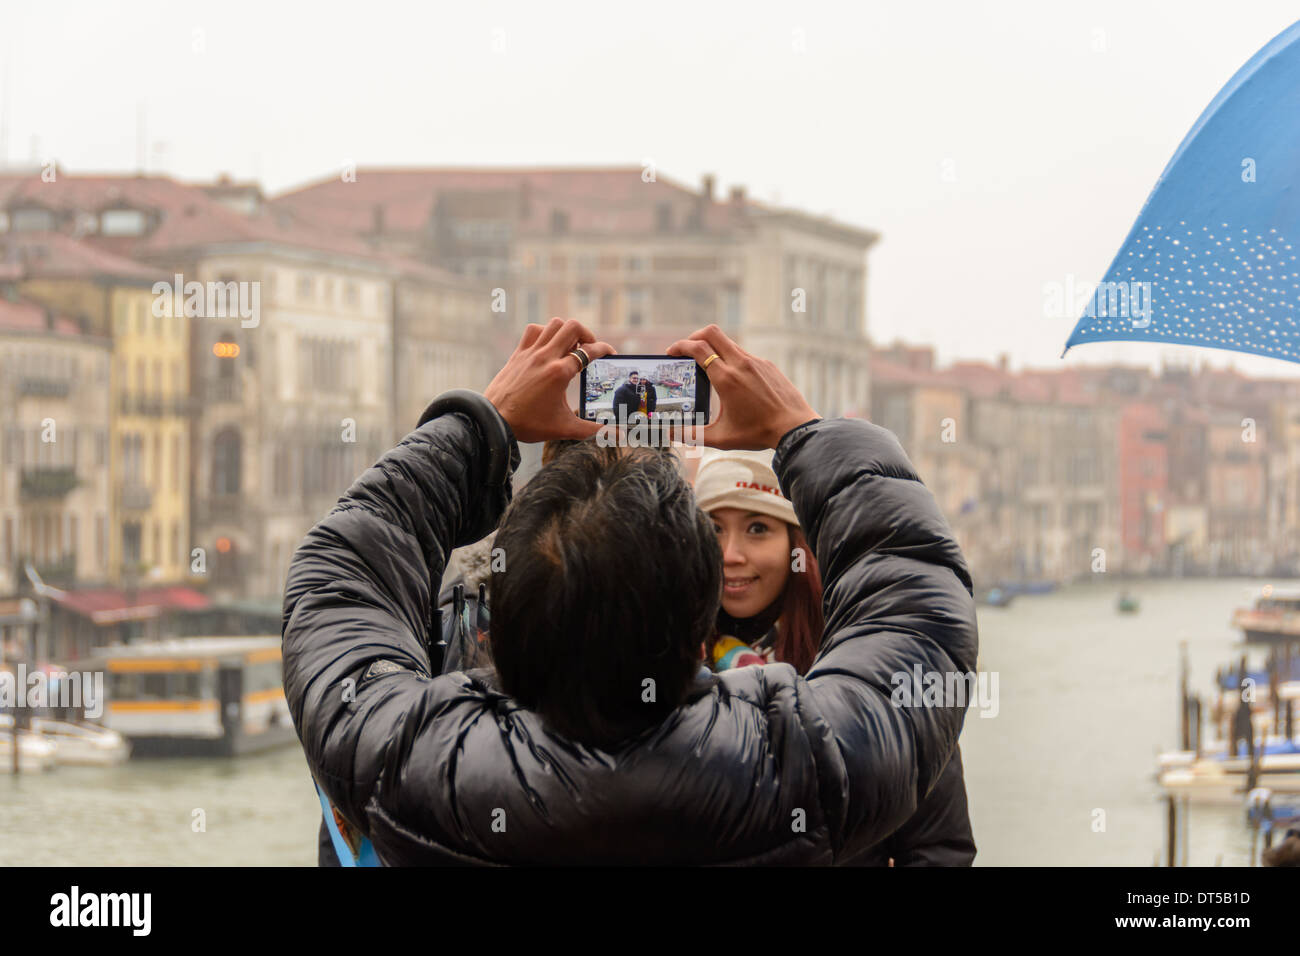 Venice, Italy. View over the Grand Canal through the display of a smartphone from a man taking pictures from an Asian couple. - Stock Image